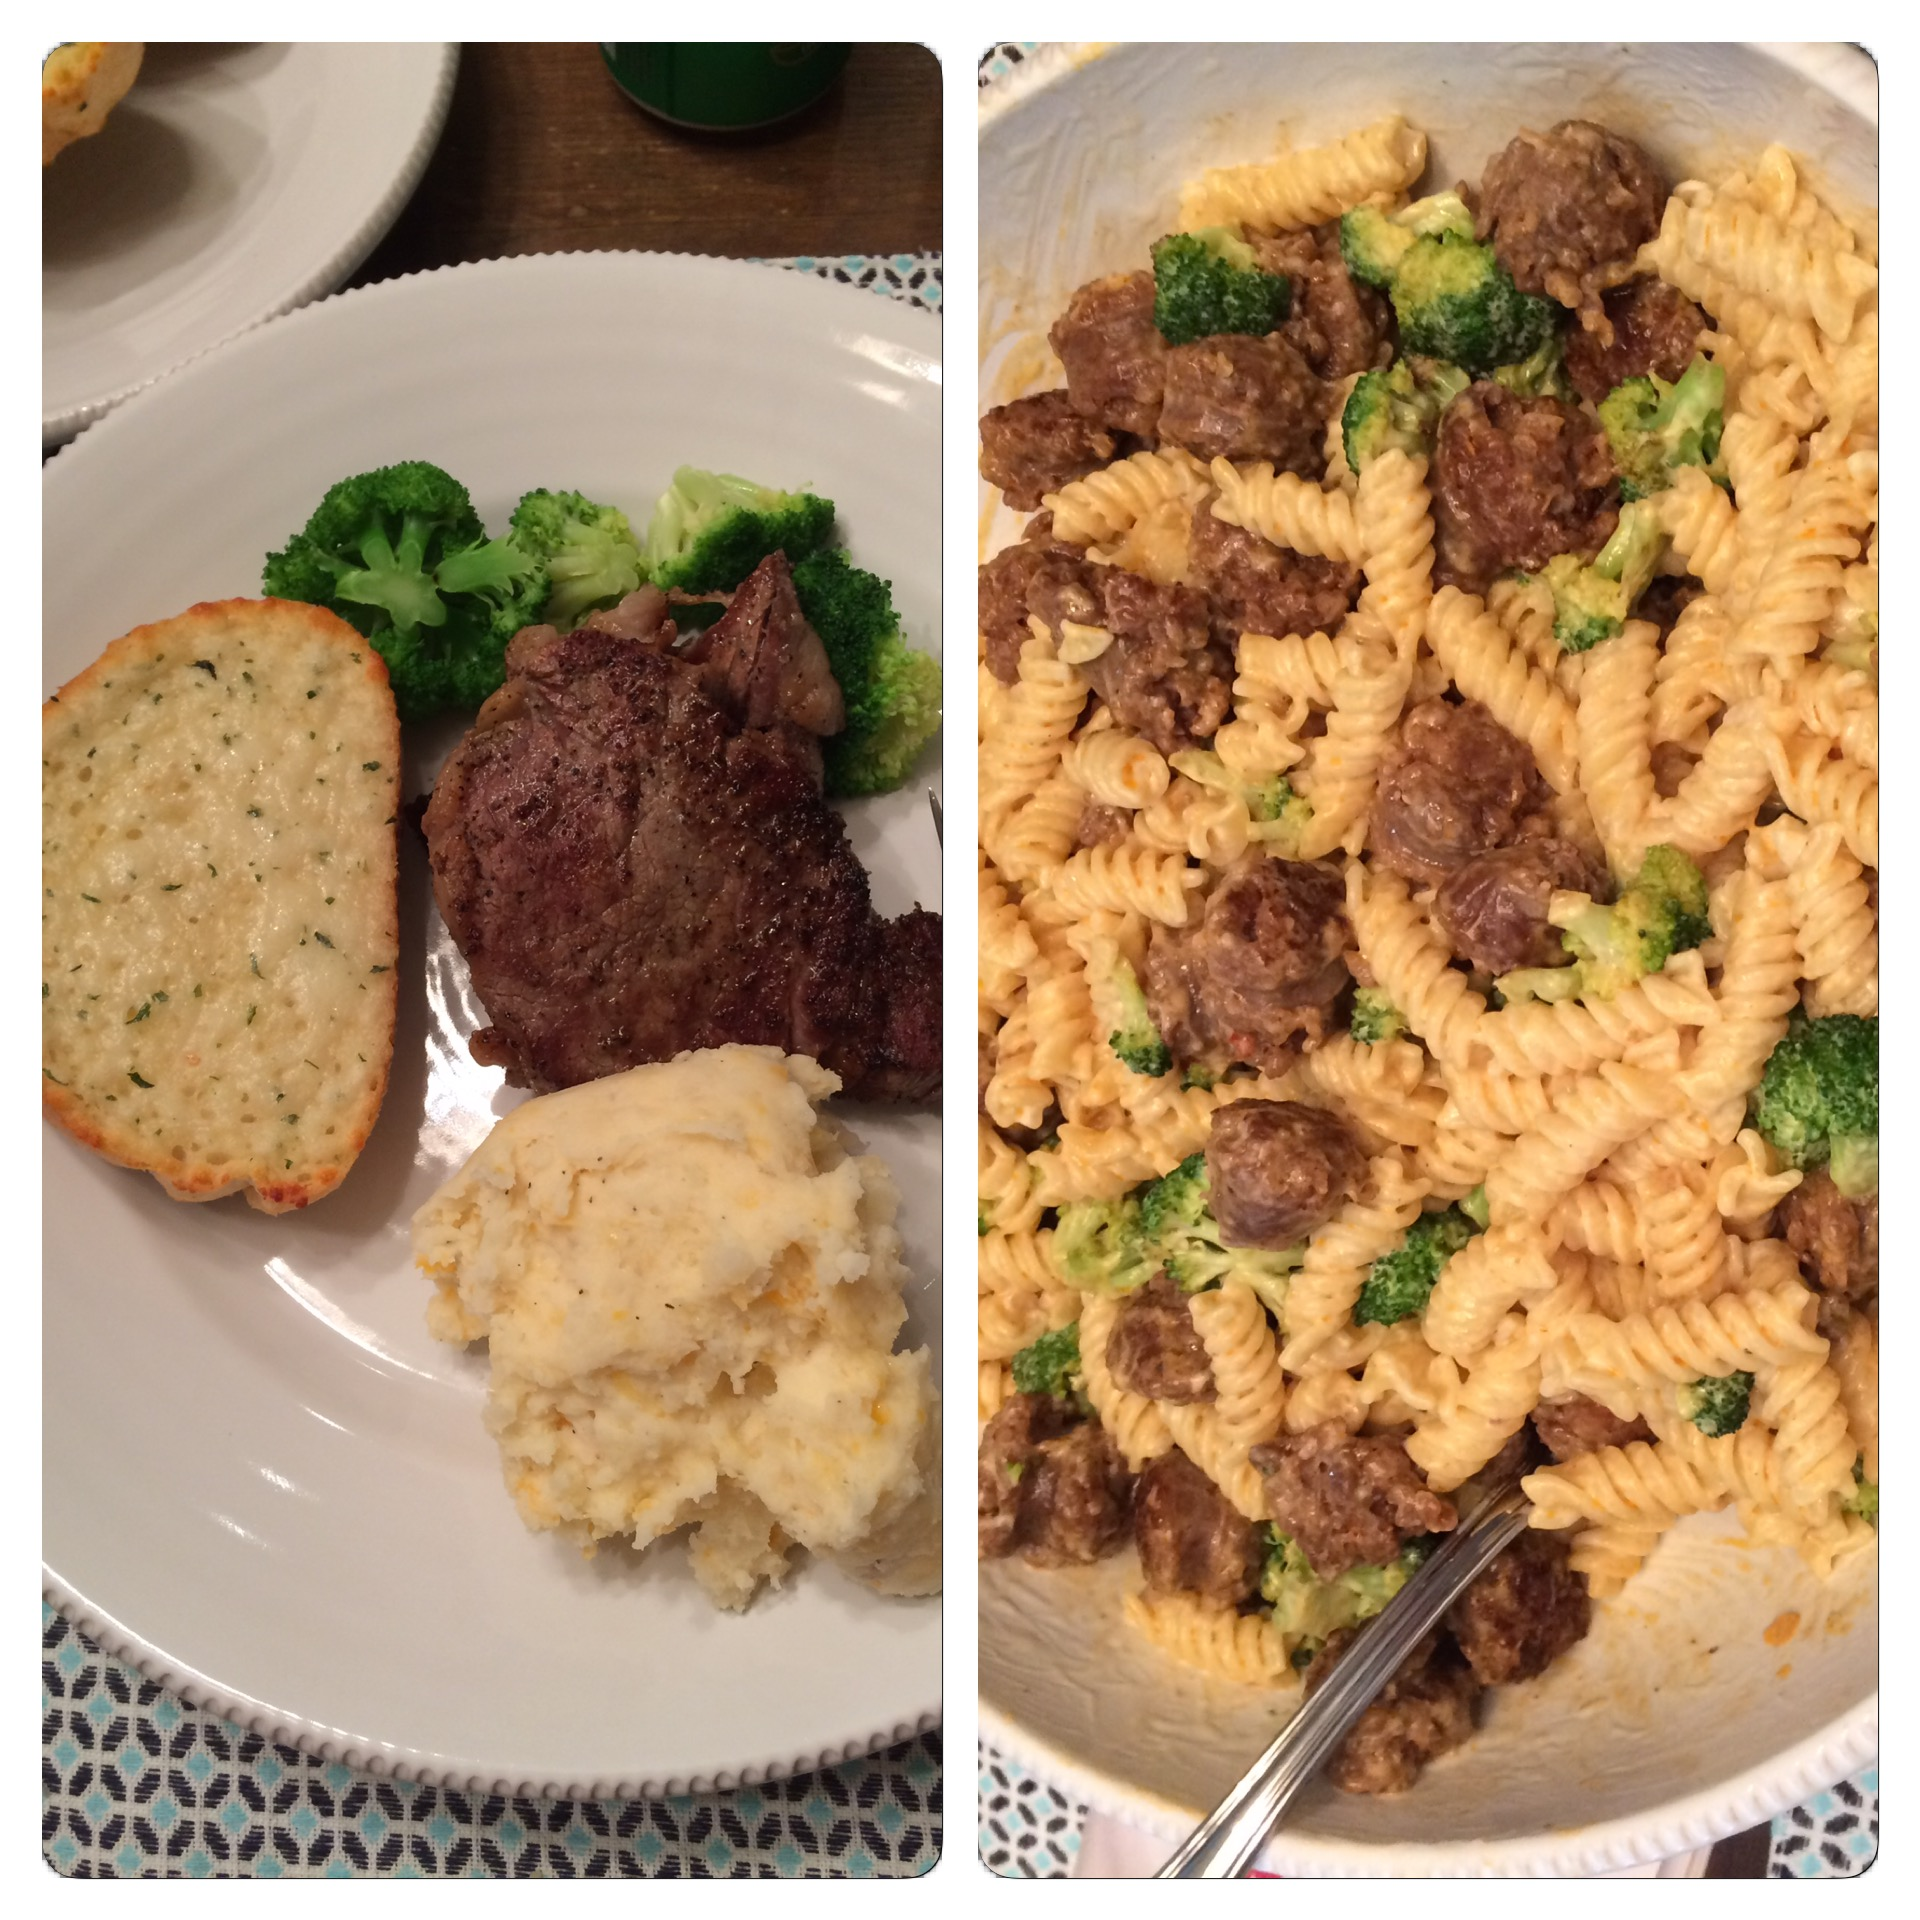 Steak one night, sausage pasta the next.